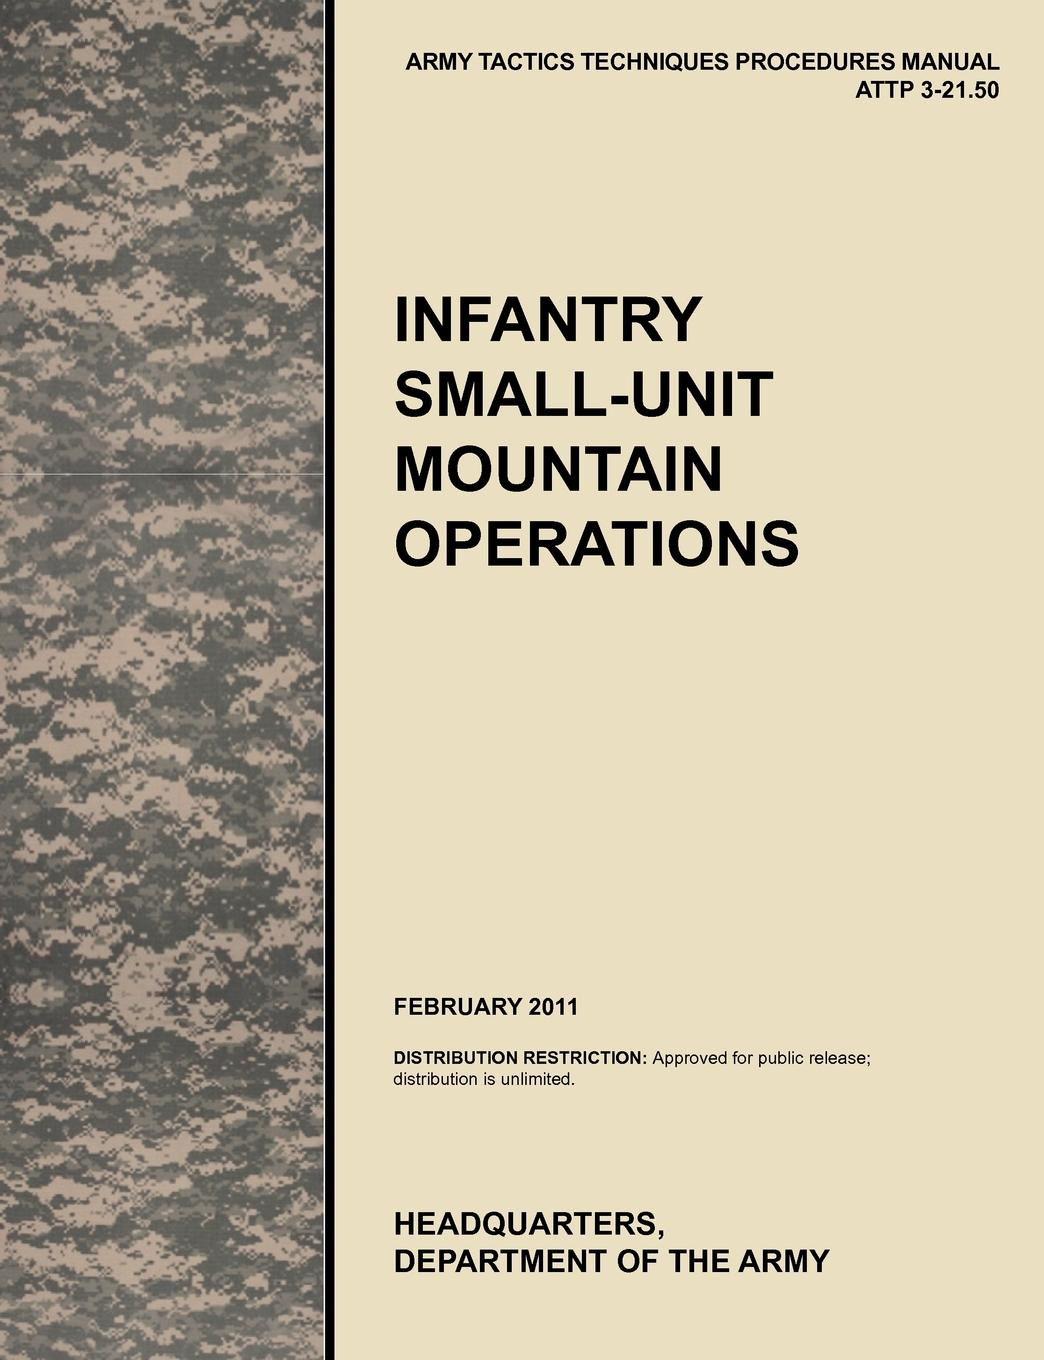 U. S. Army Training and Doctrine Command, Army Maneuver Center of Excellence, U. S. Department of the Infantry Small-Unit Mountain Operations. The Official U.S. Army Tactics, Techniques, and Procedures (Attp) Manual 3.21-50 (February 2011) u s army training and doctrine command army aviation center of excellence u s department of the army aviation maintenance the official u s army training circular tc 3 04 7 fm 3 04 500 february 2010